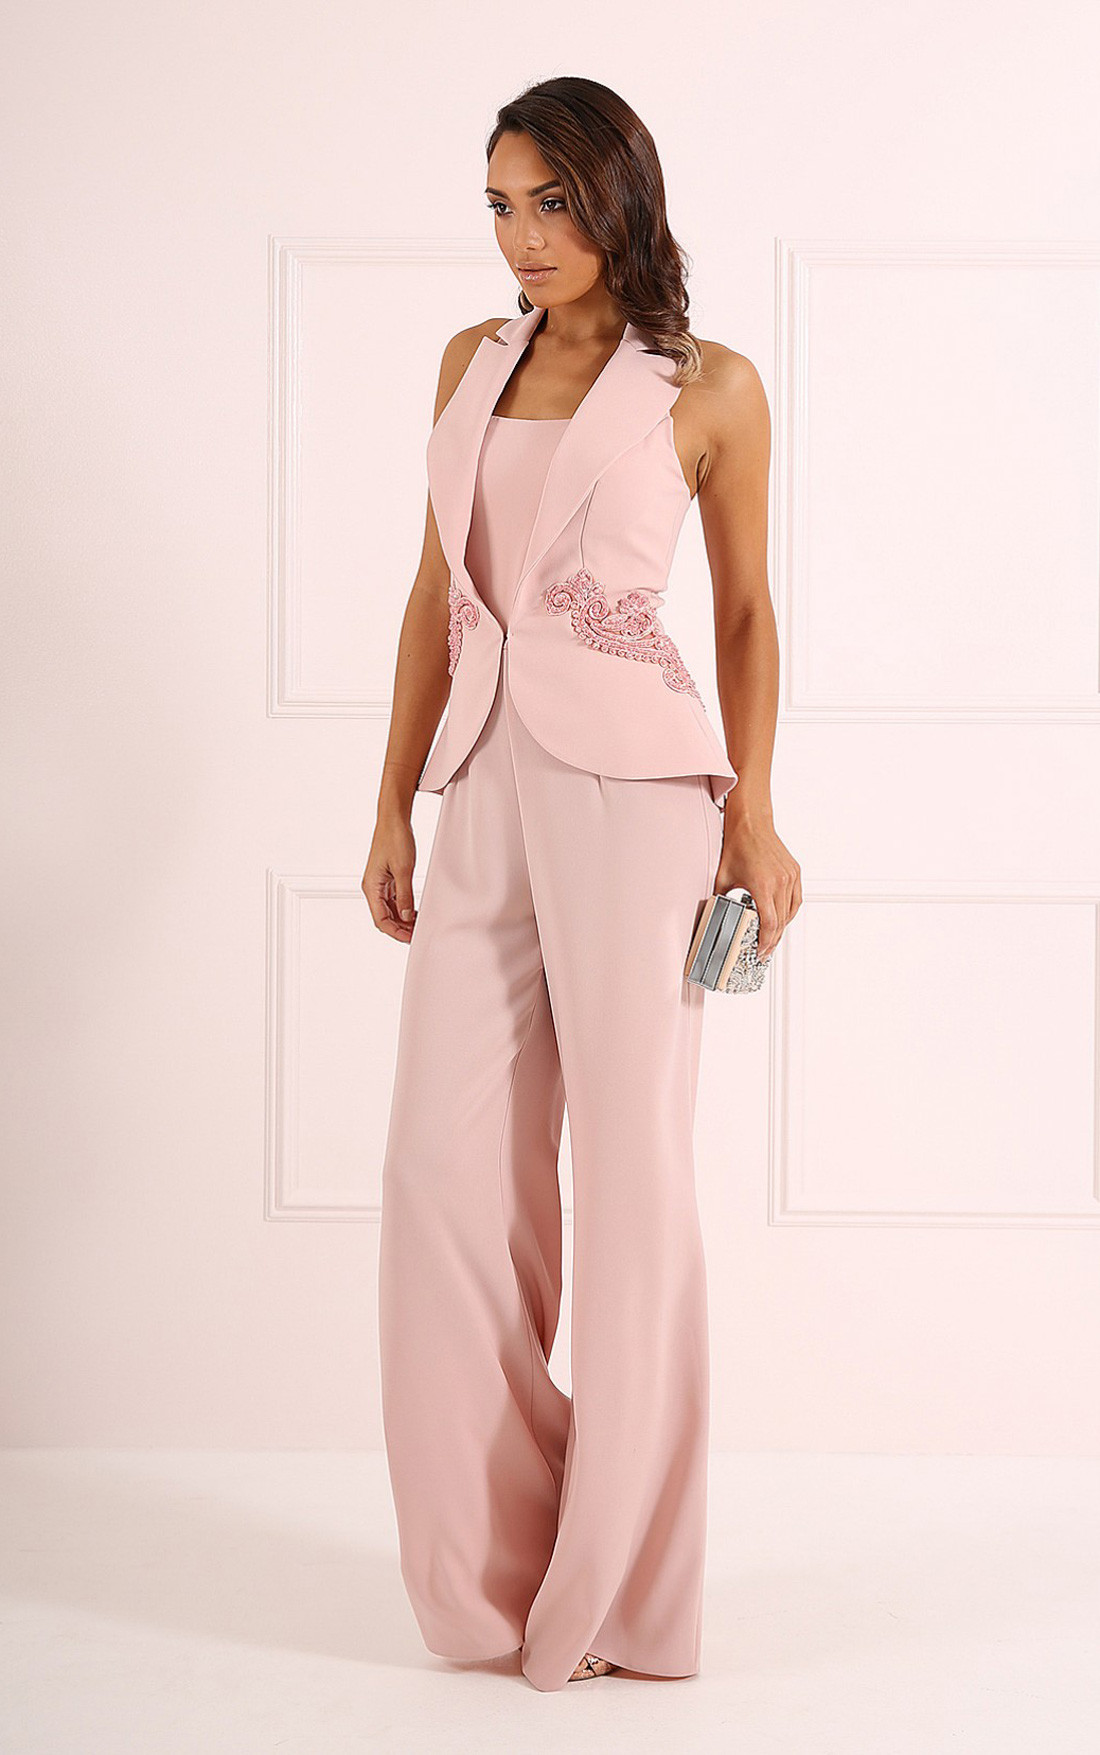 Forever Unique - Andie Nude Tuxedo Style Jumpsuit (CH8802)